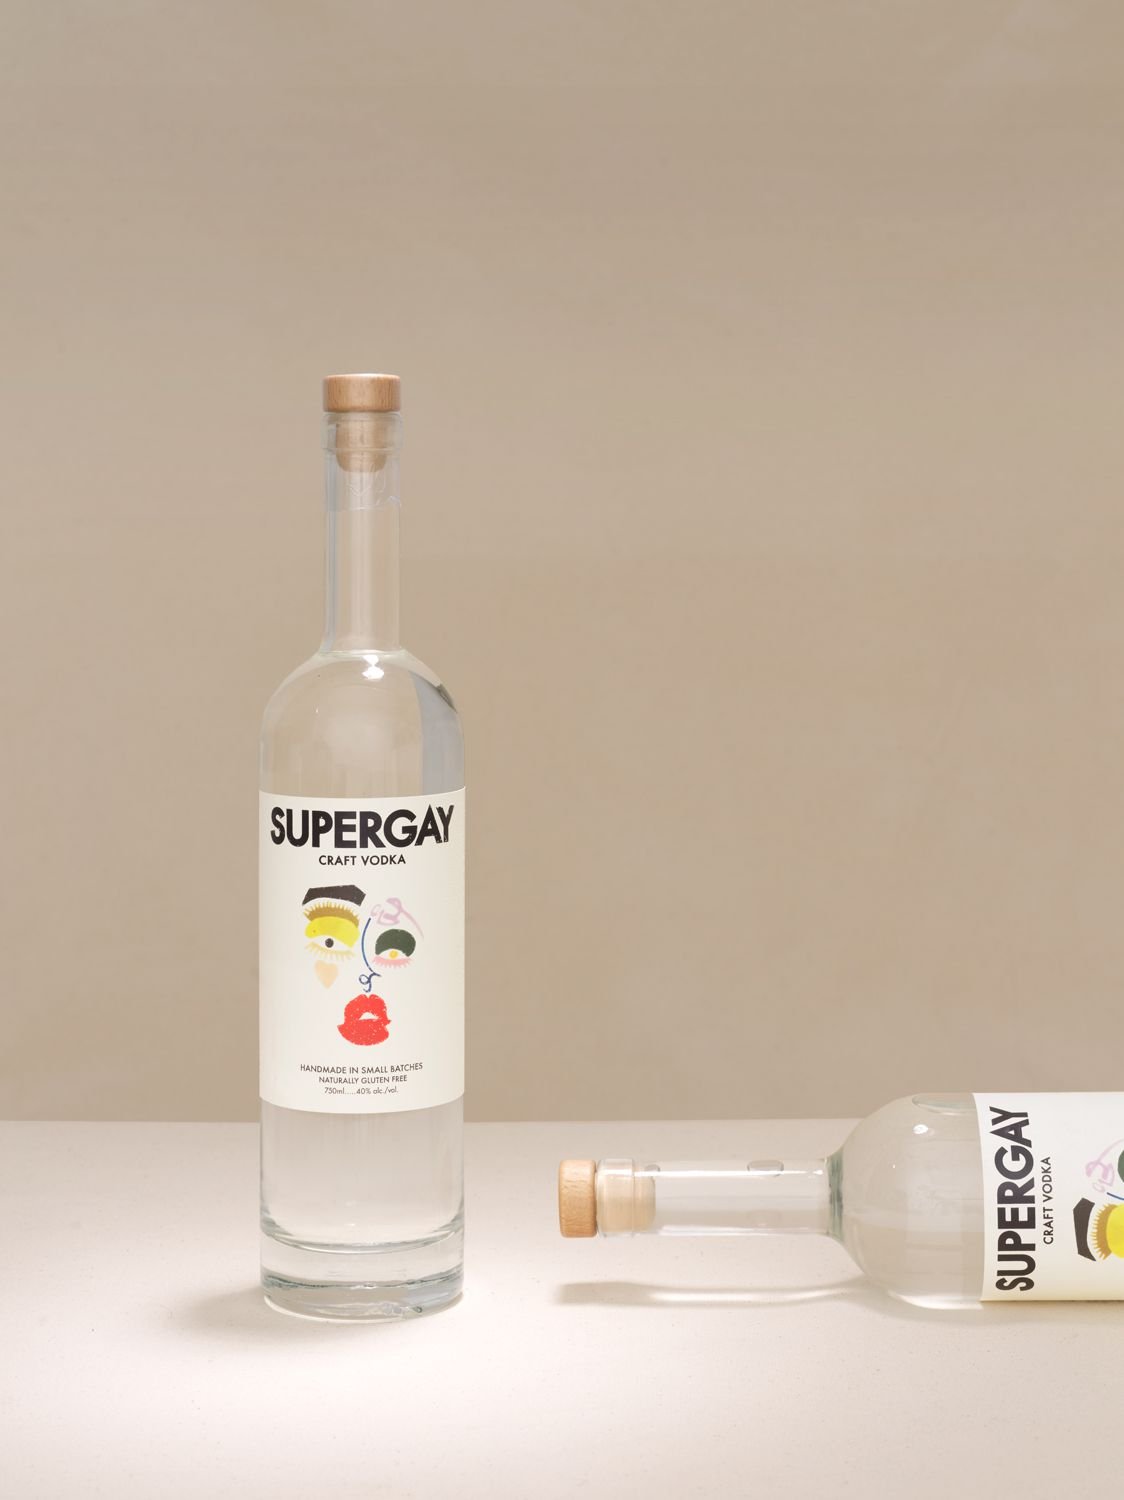 Two tall bottles with a clear liquid, one standing and one sitting flat on a table against a white background